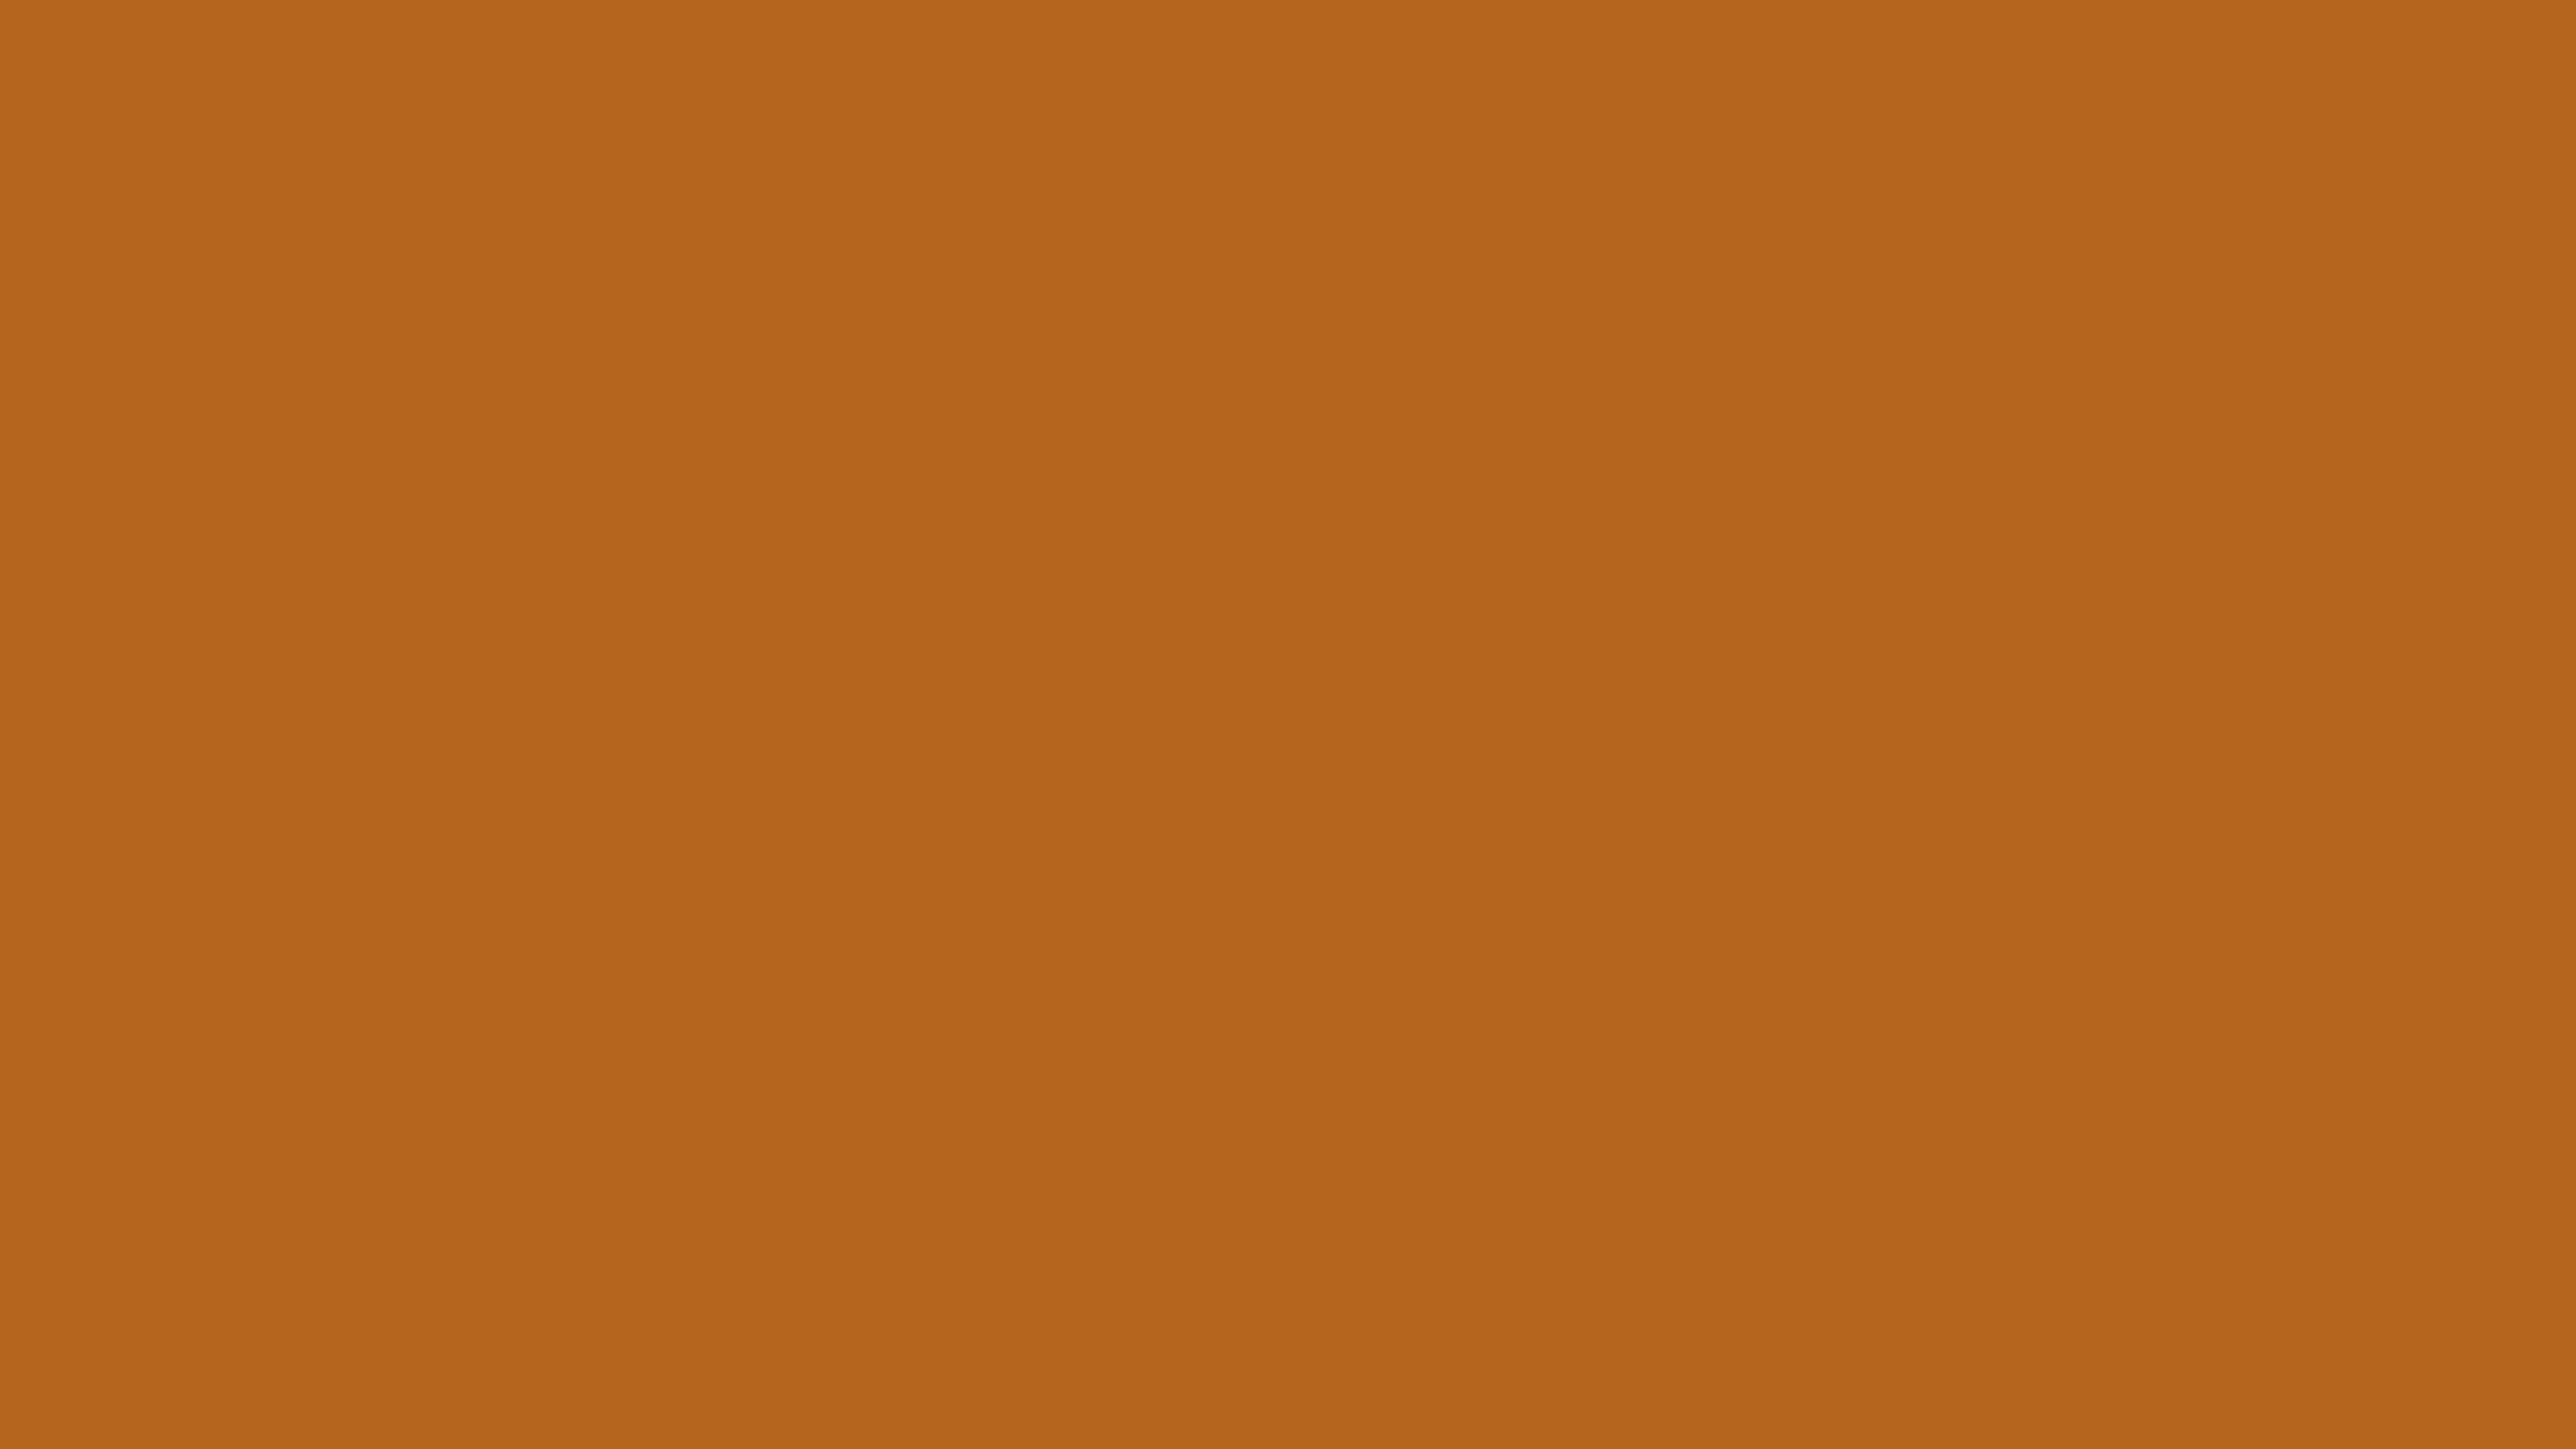 3840x2160 Light Brown Solid Color Background